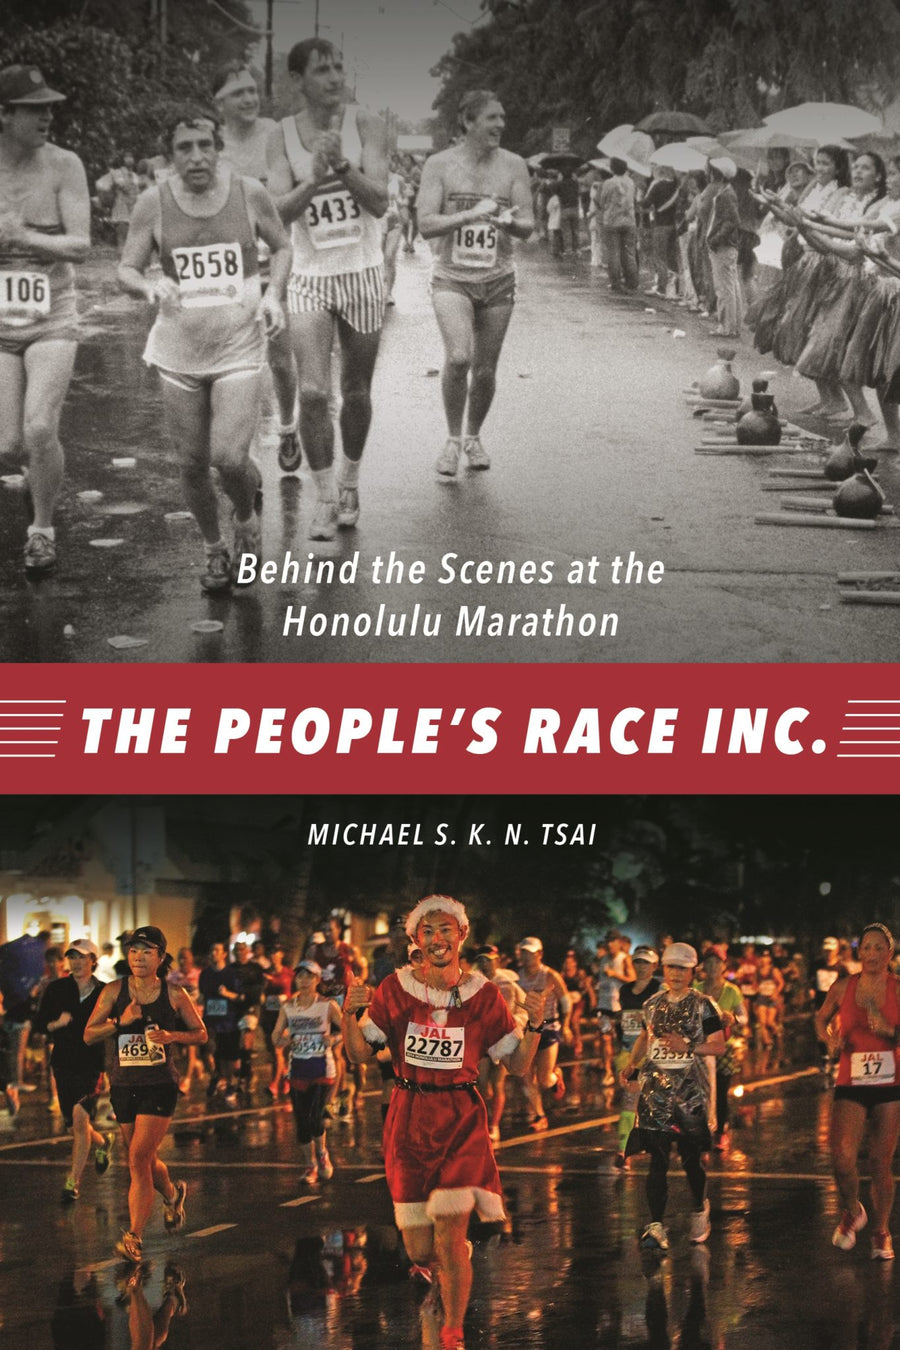 People's Race Inc.: Behind the Scenes at the Honolulu Marathon, The